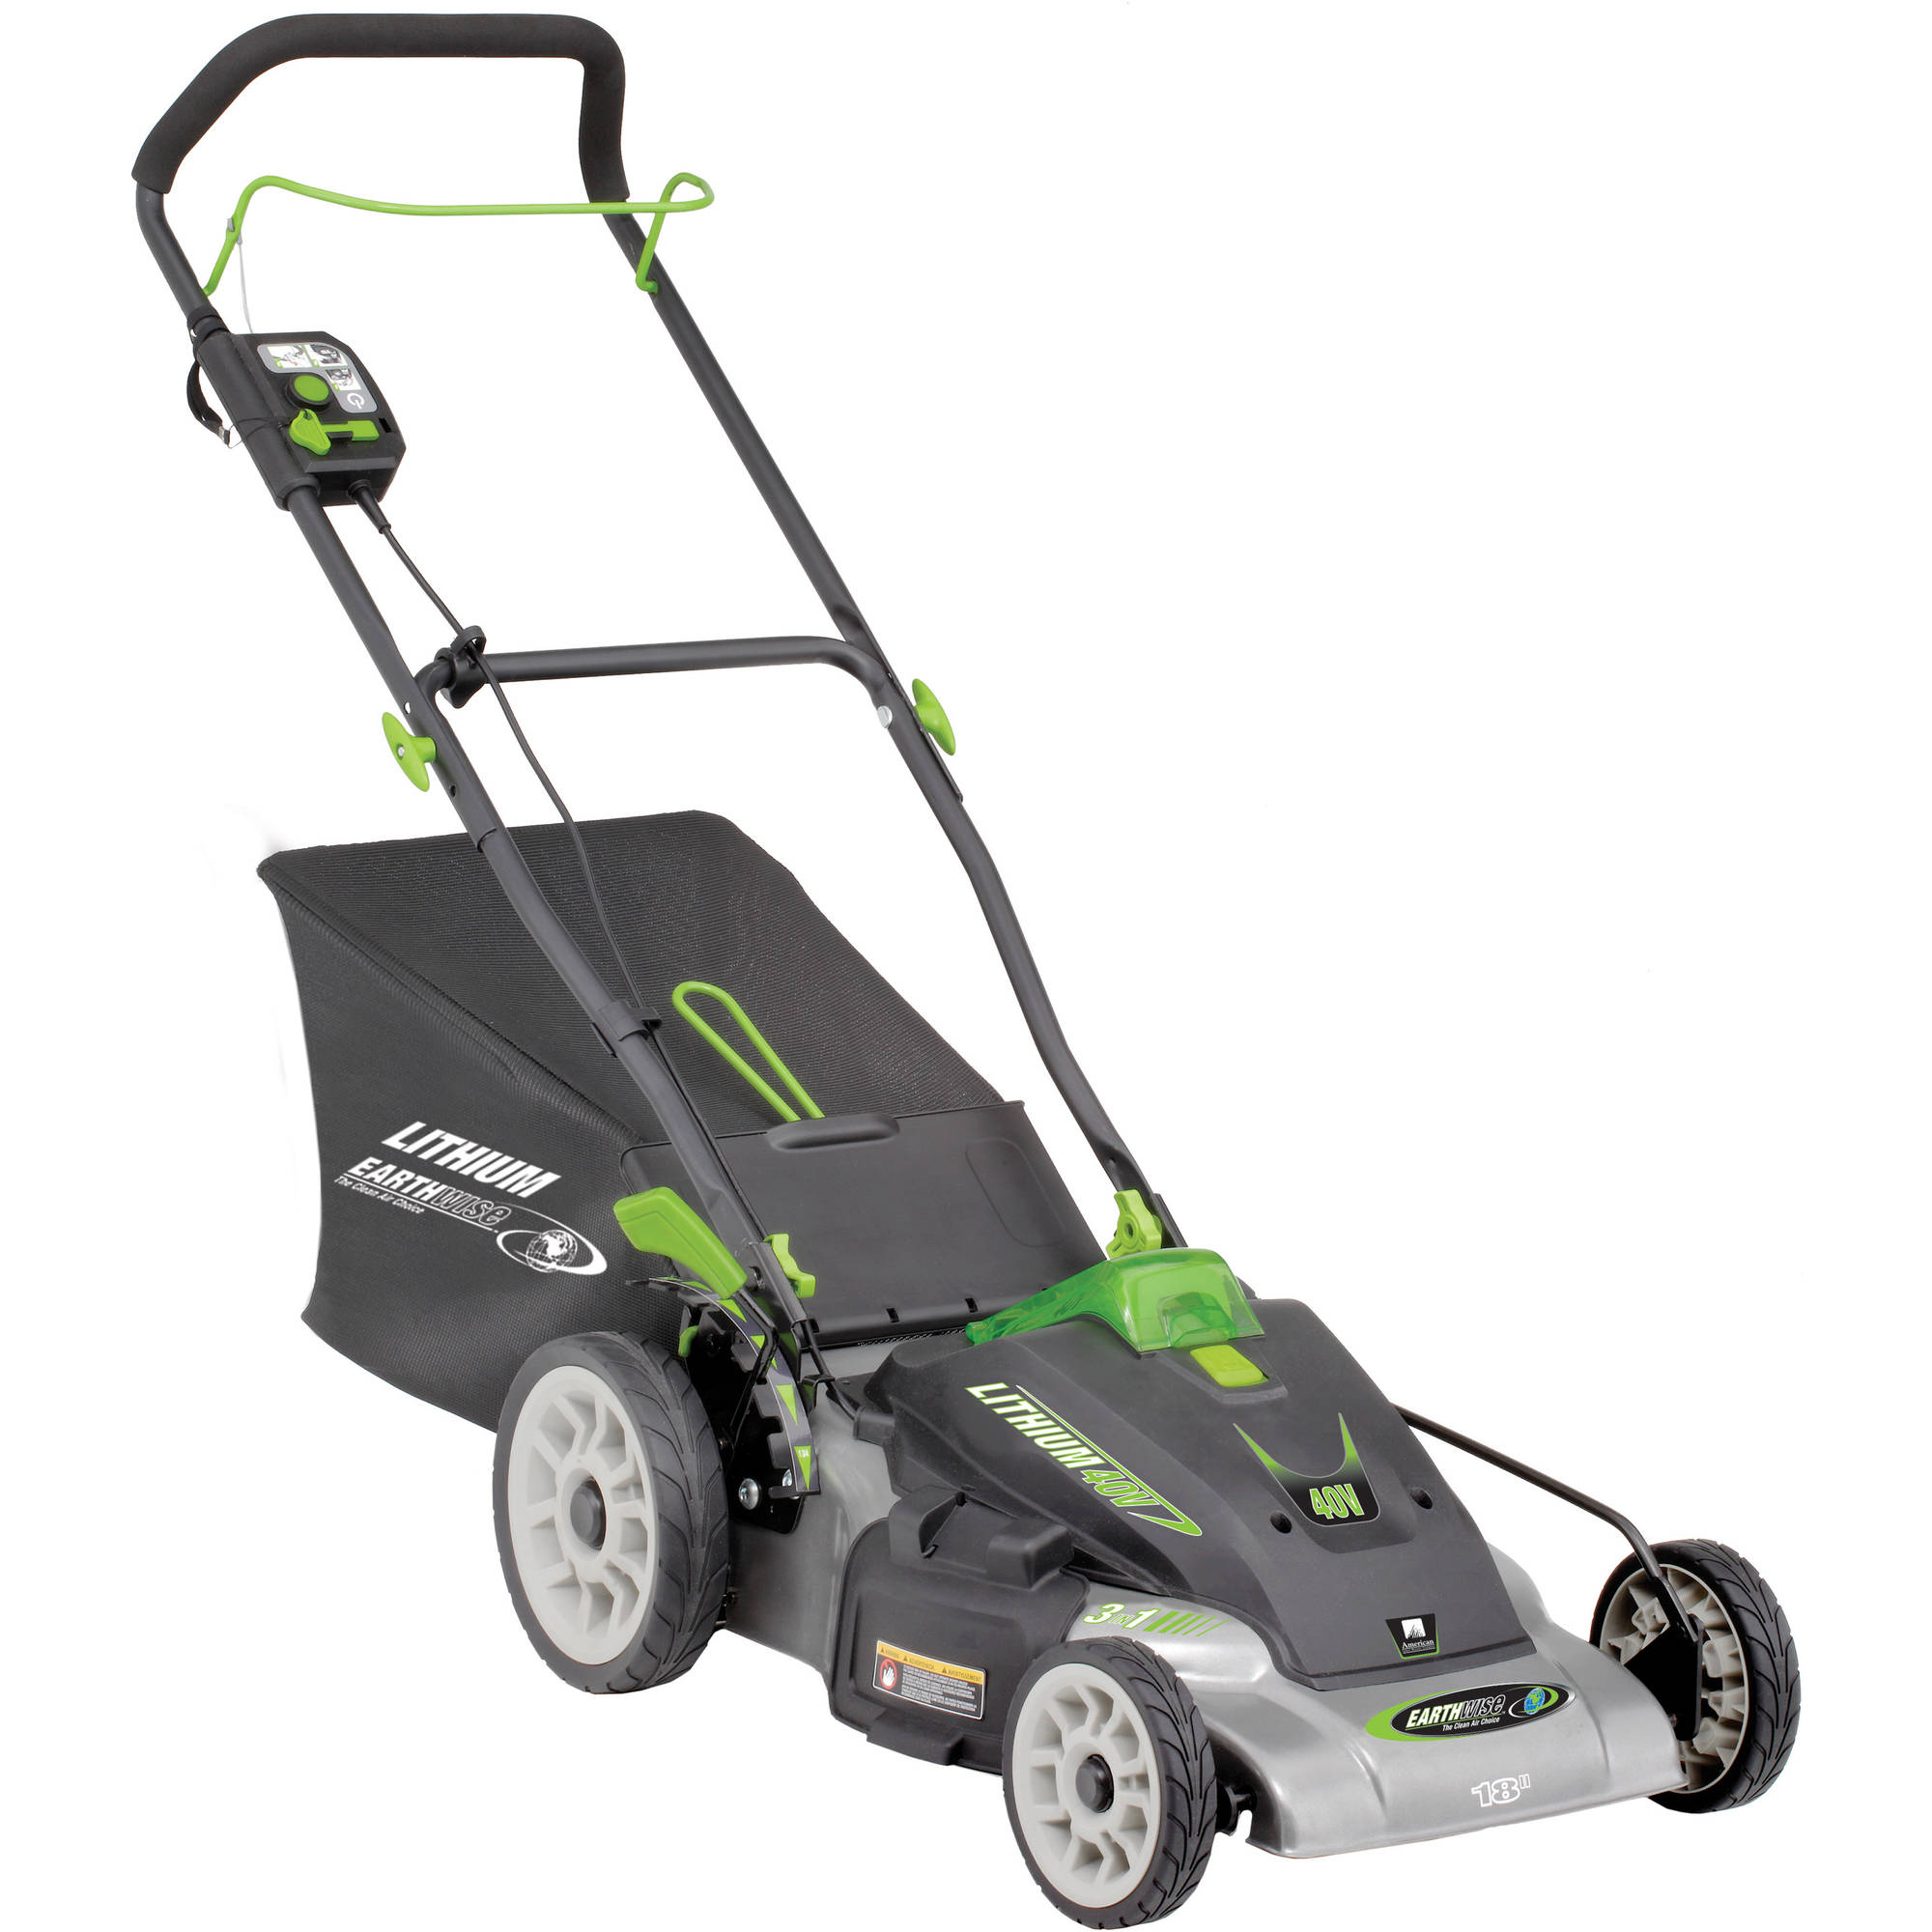 "Earthwise 60418 18"" 40-Volt Lithium Ion Cordless Electric Lawn Mower (Battery and charger included)"